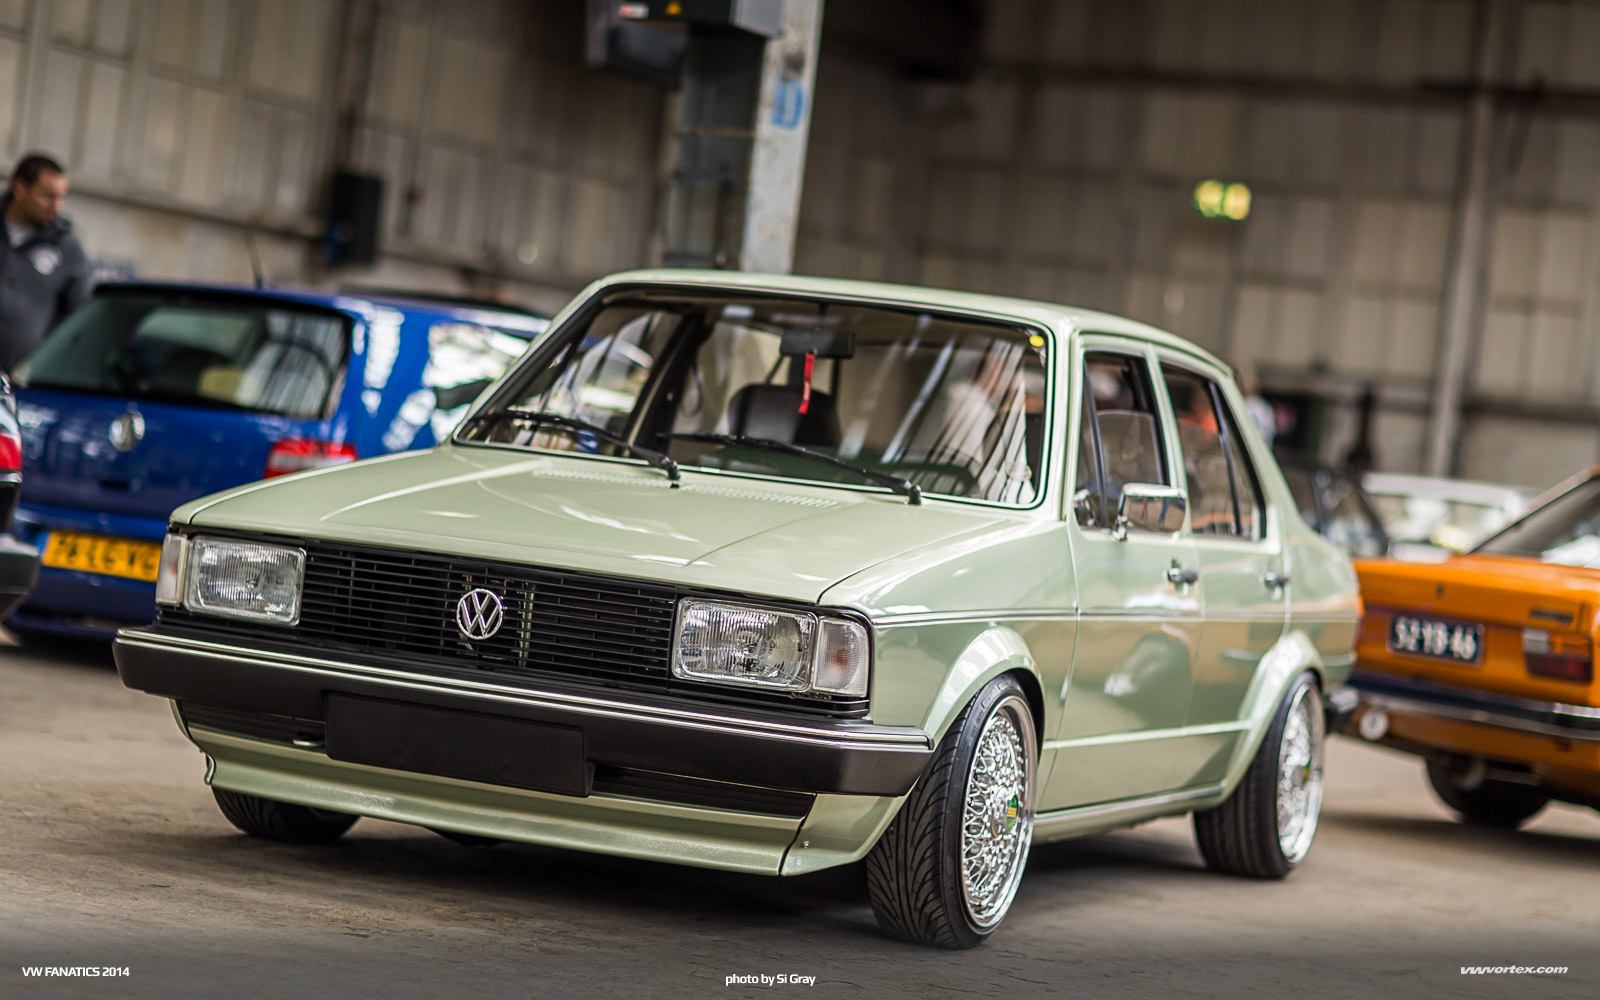 VWFanatics-2014-Si-Gray-499